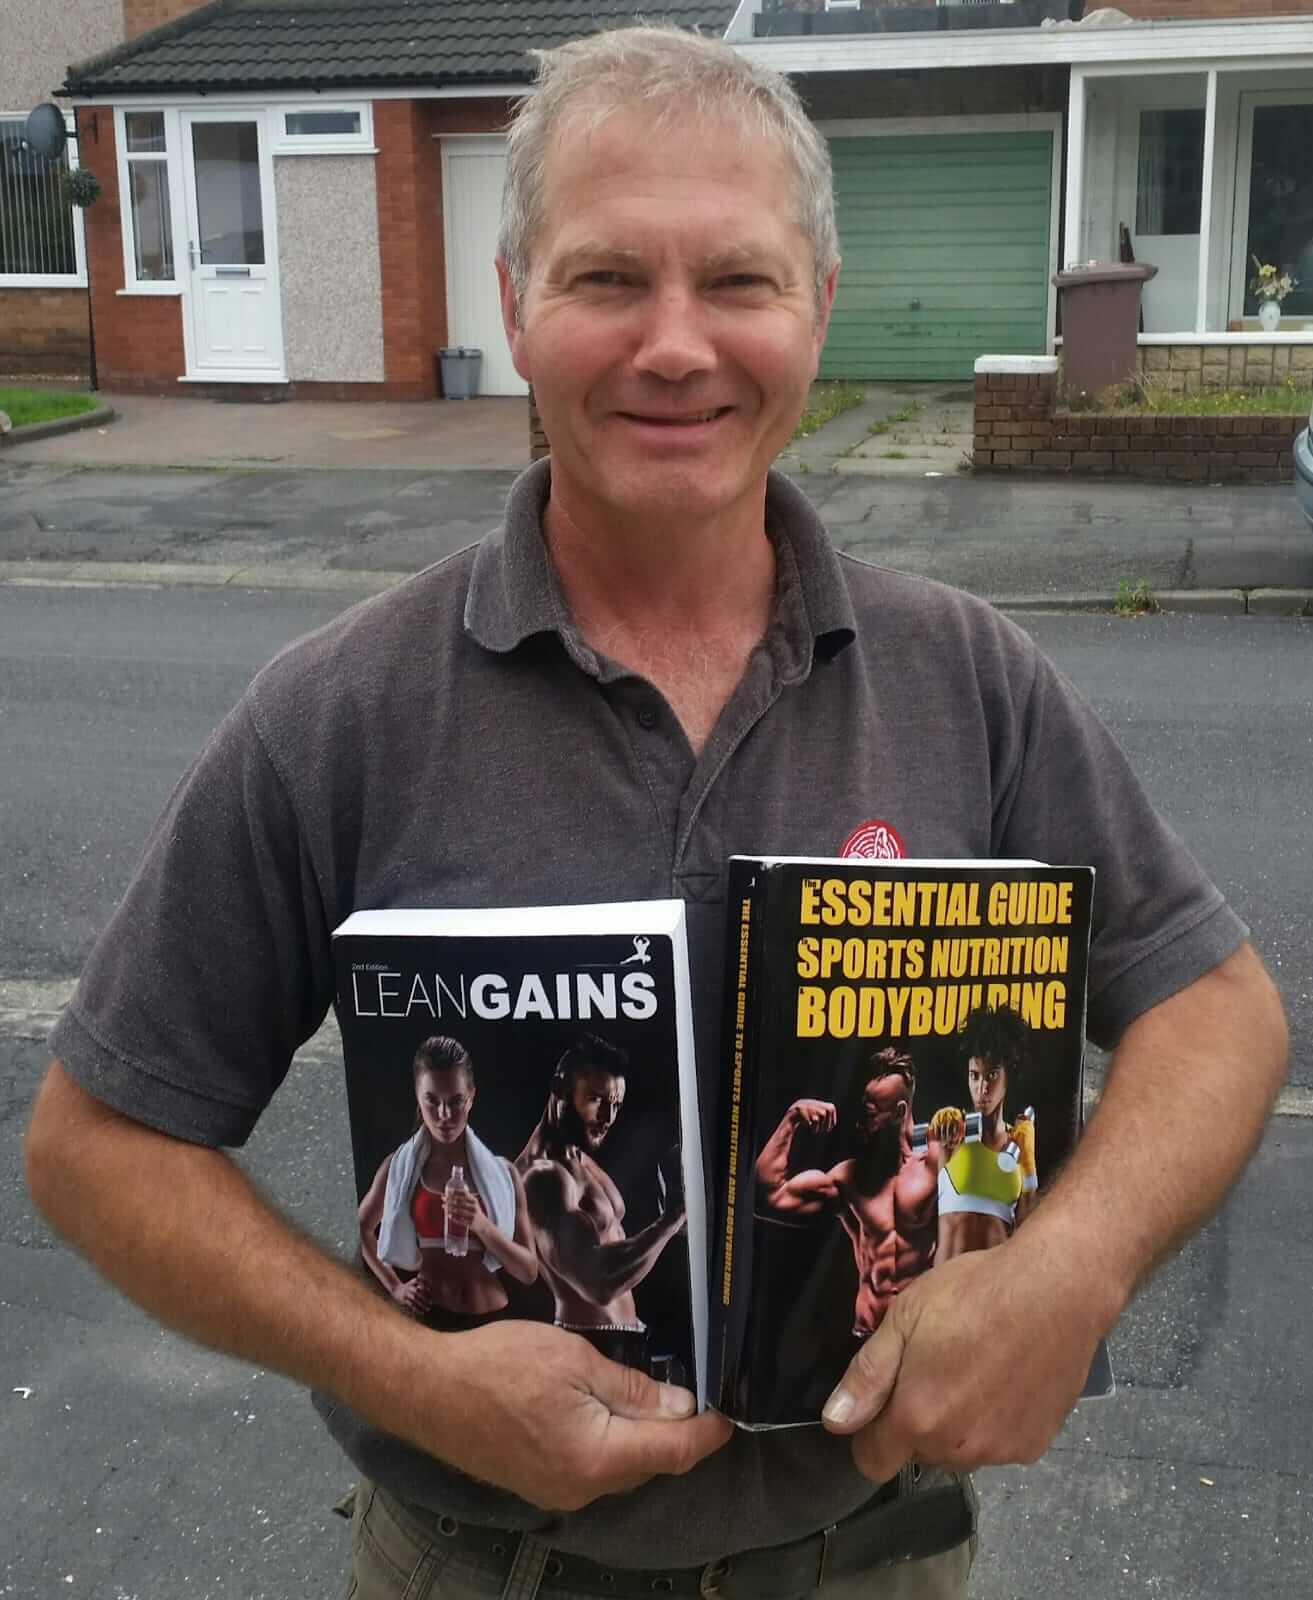 paul holding lean gains book